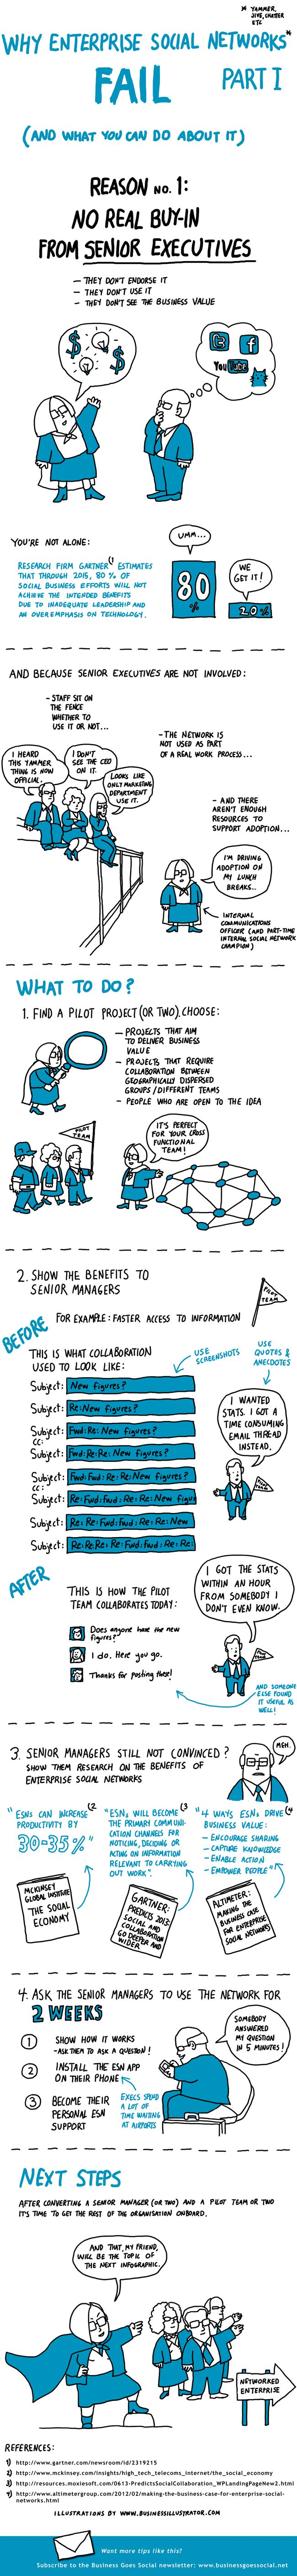 Why Enterprise Social Networks Like Yammer Fail - Also check out our related blog post: Social Software Platforms: High-Level Guidance for Organizations http://www.pinterest.com/pin/121667627407191790/